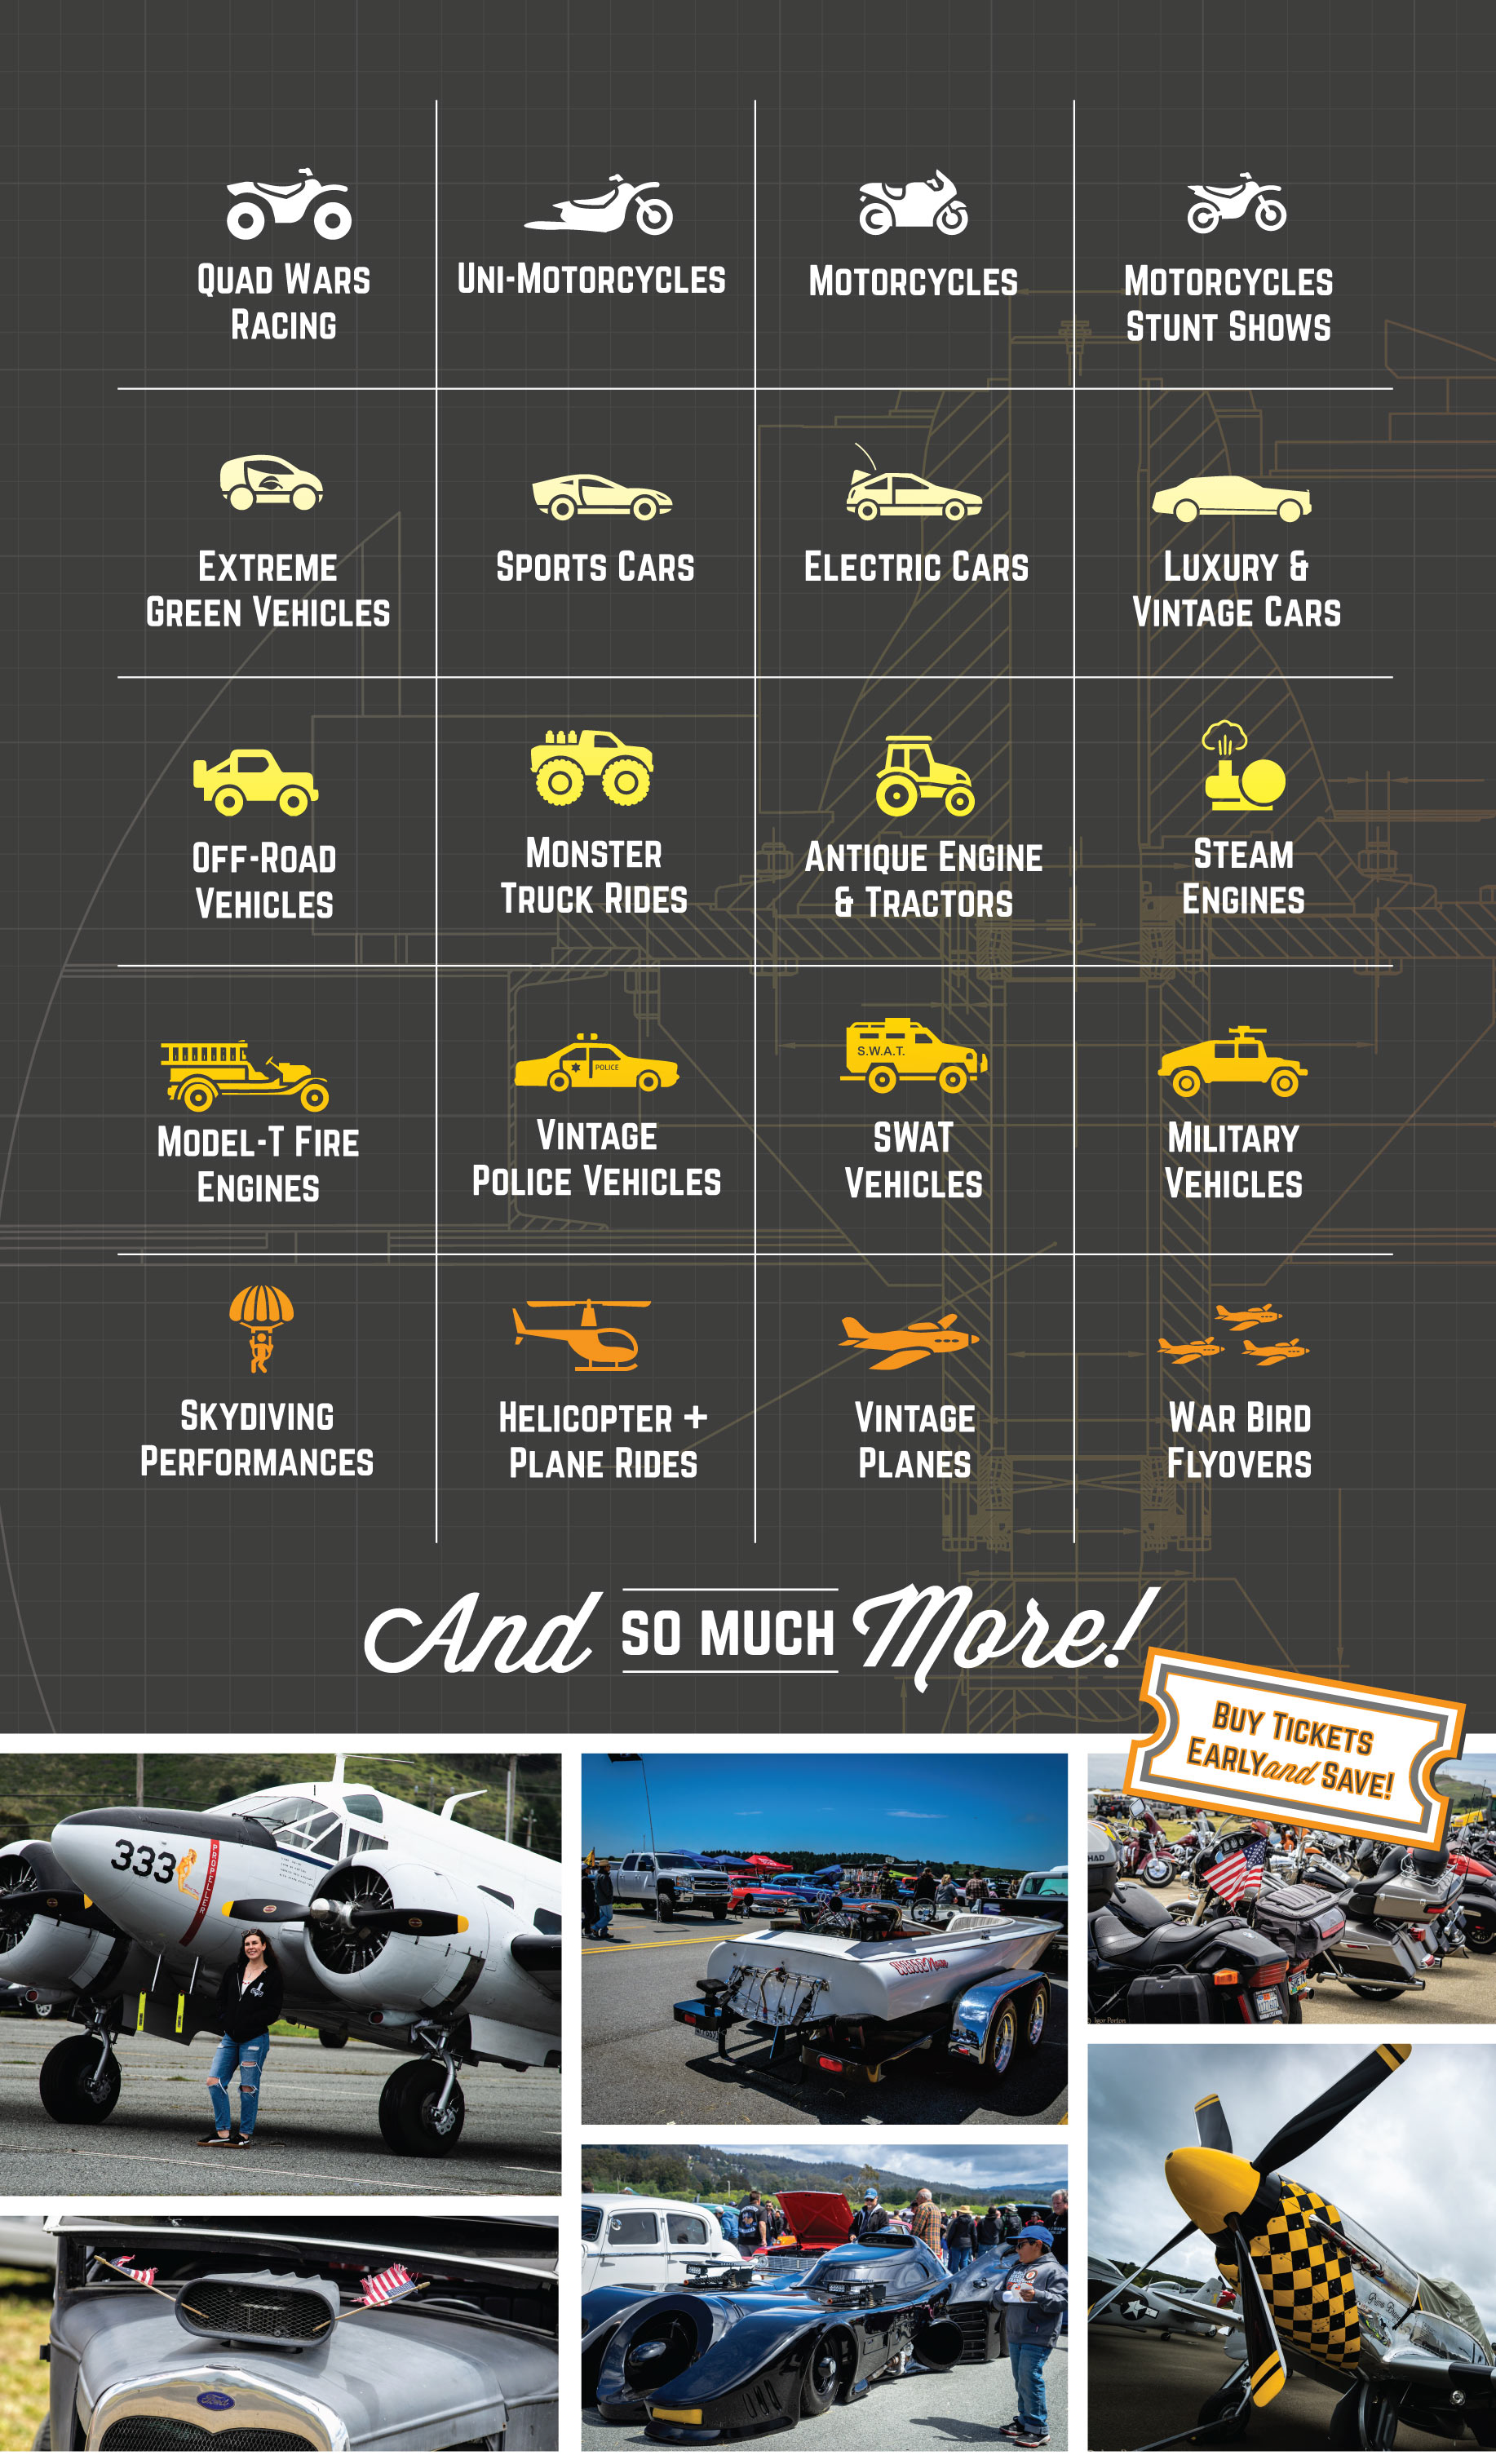 quad wars, uni motorcycles, sports cars, electric cars, luxury cars, off road vehicles, tractors, monster truck rides